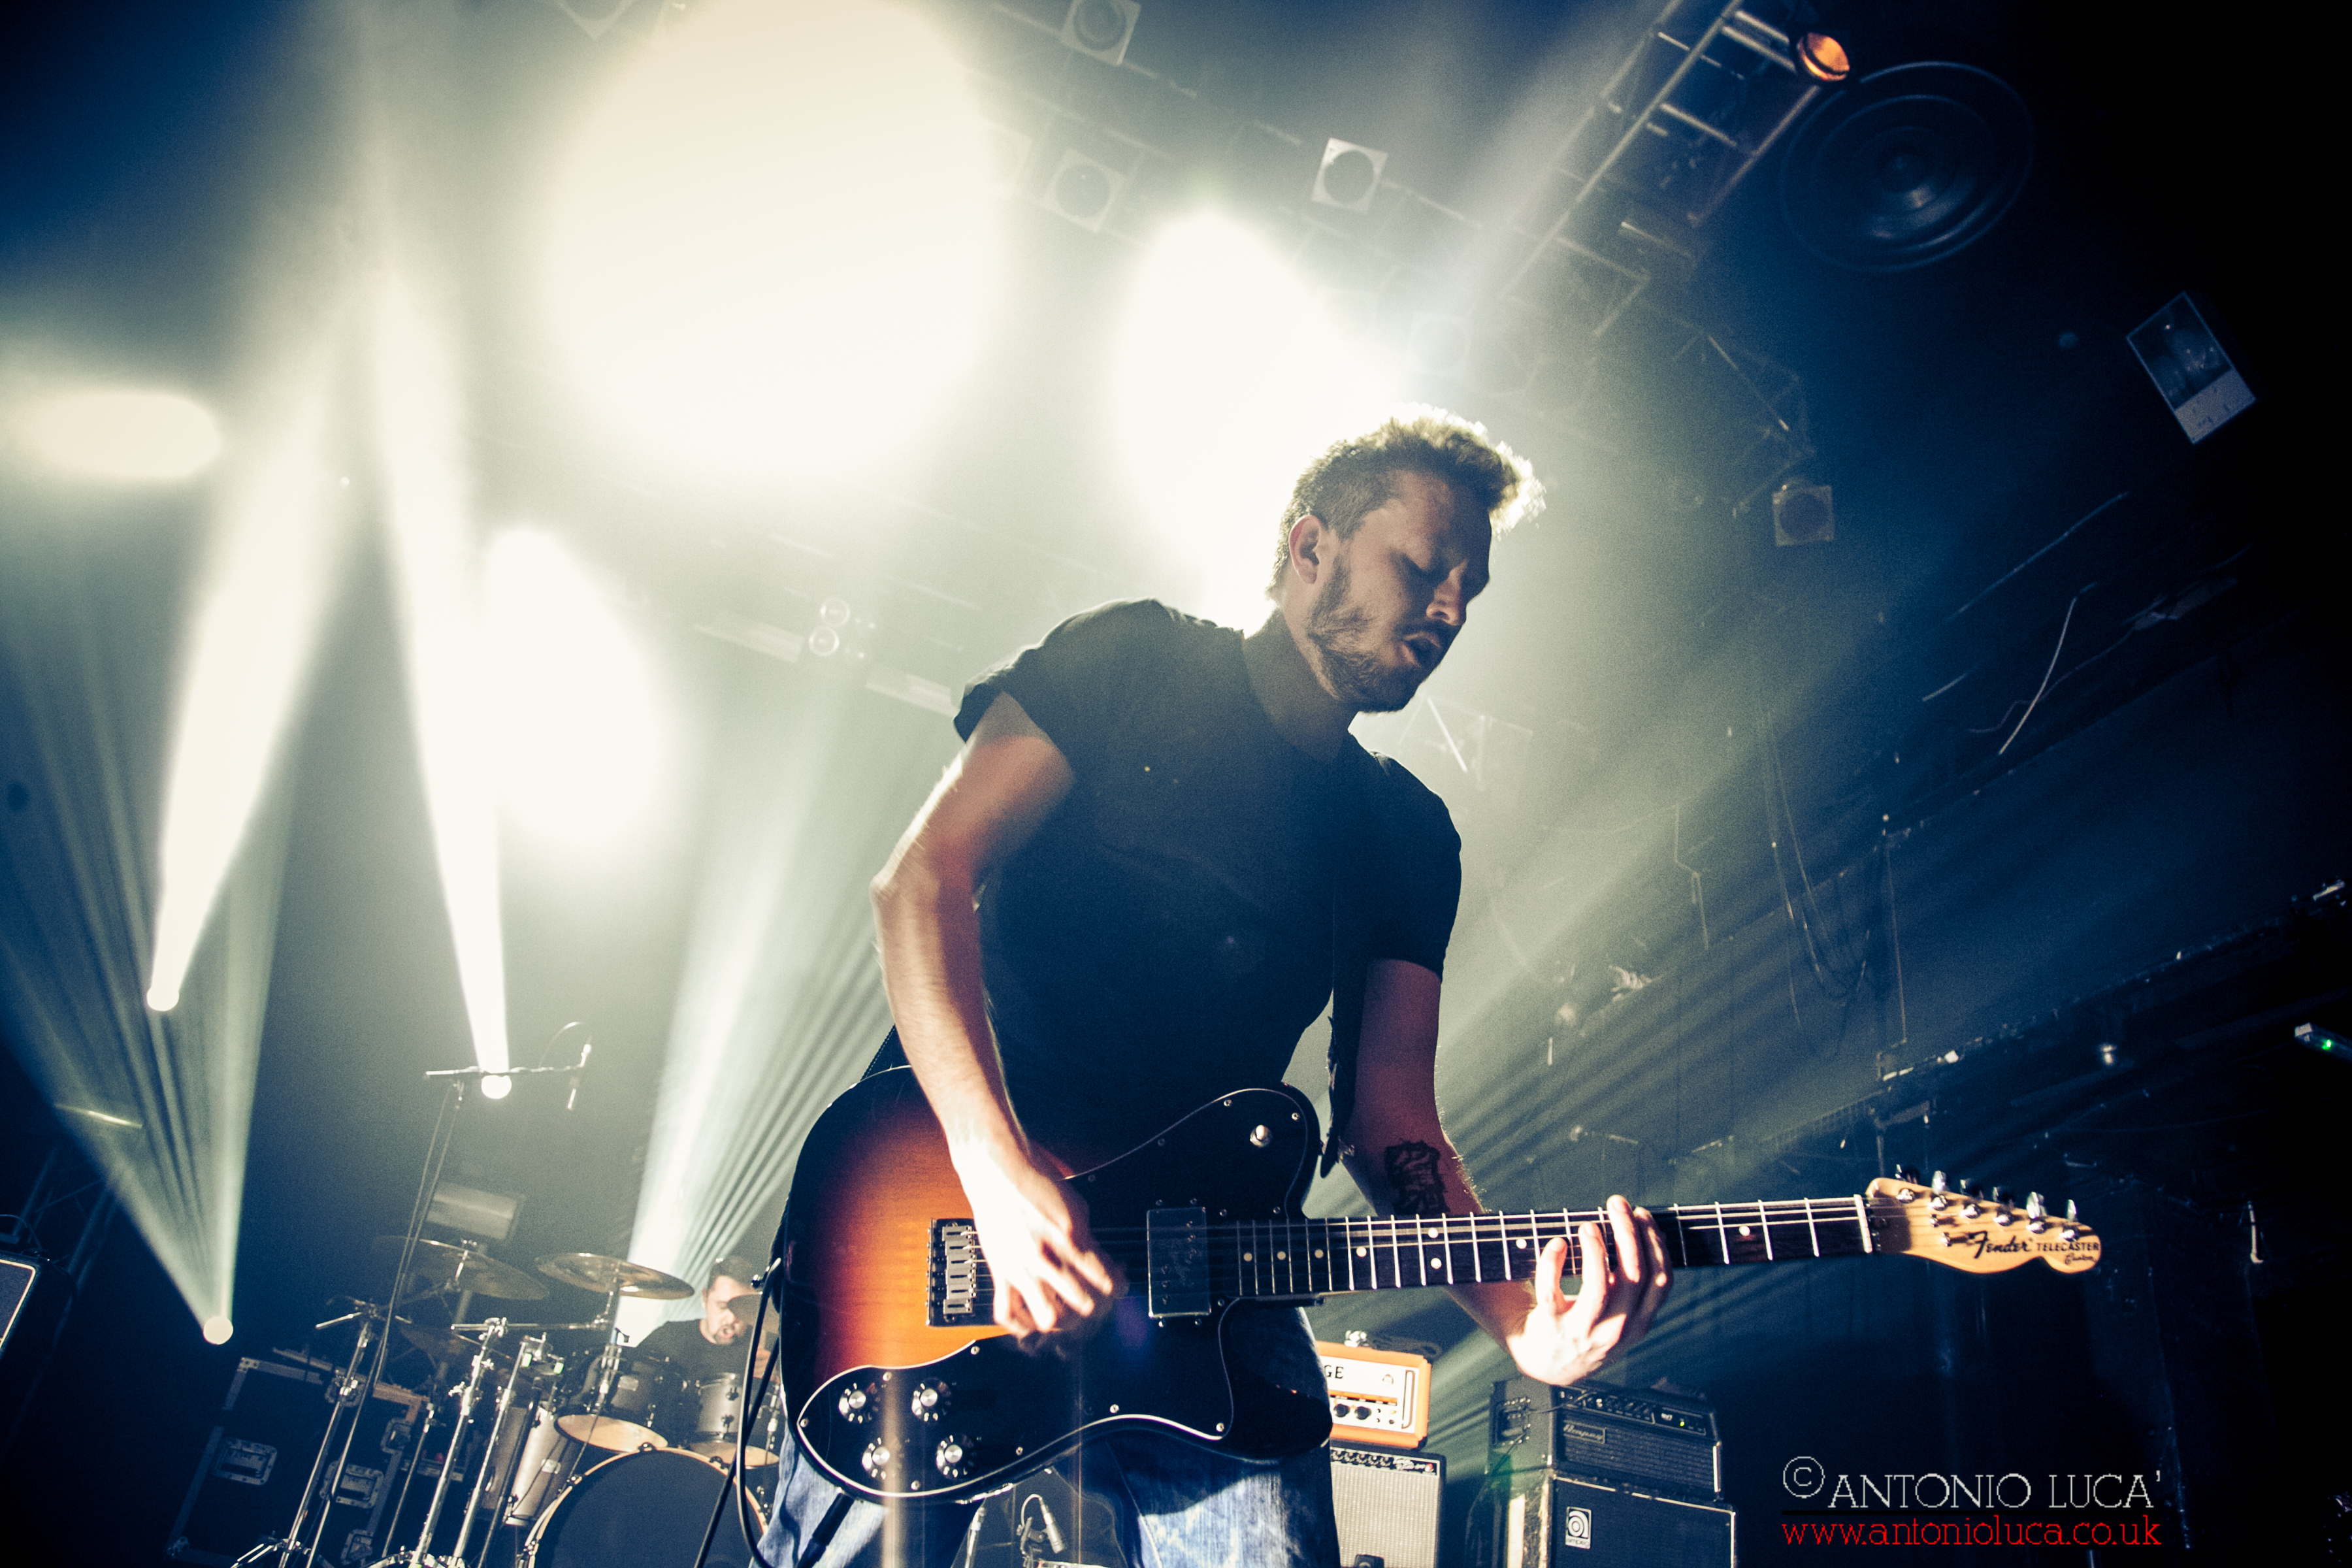 Photo Report: 65daysofstatic Live in London